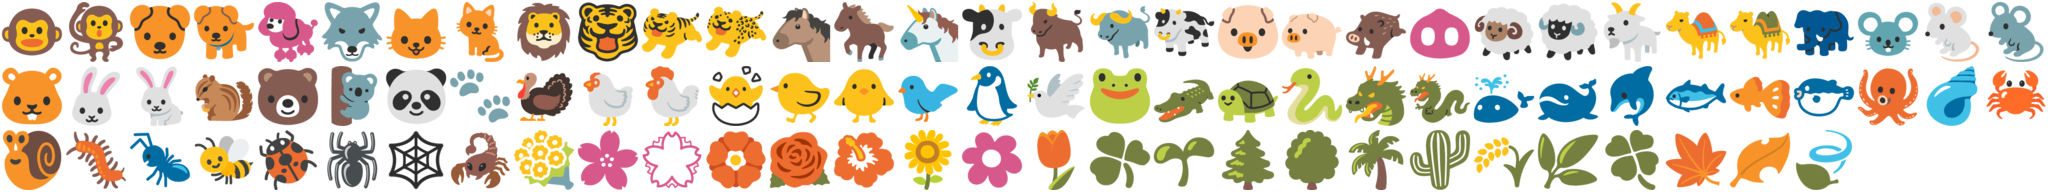 briar-android/assets/emoji_animals_nature.png